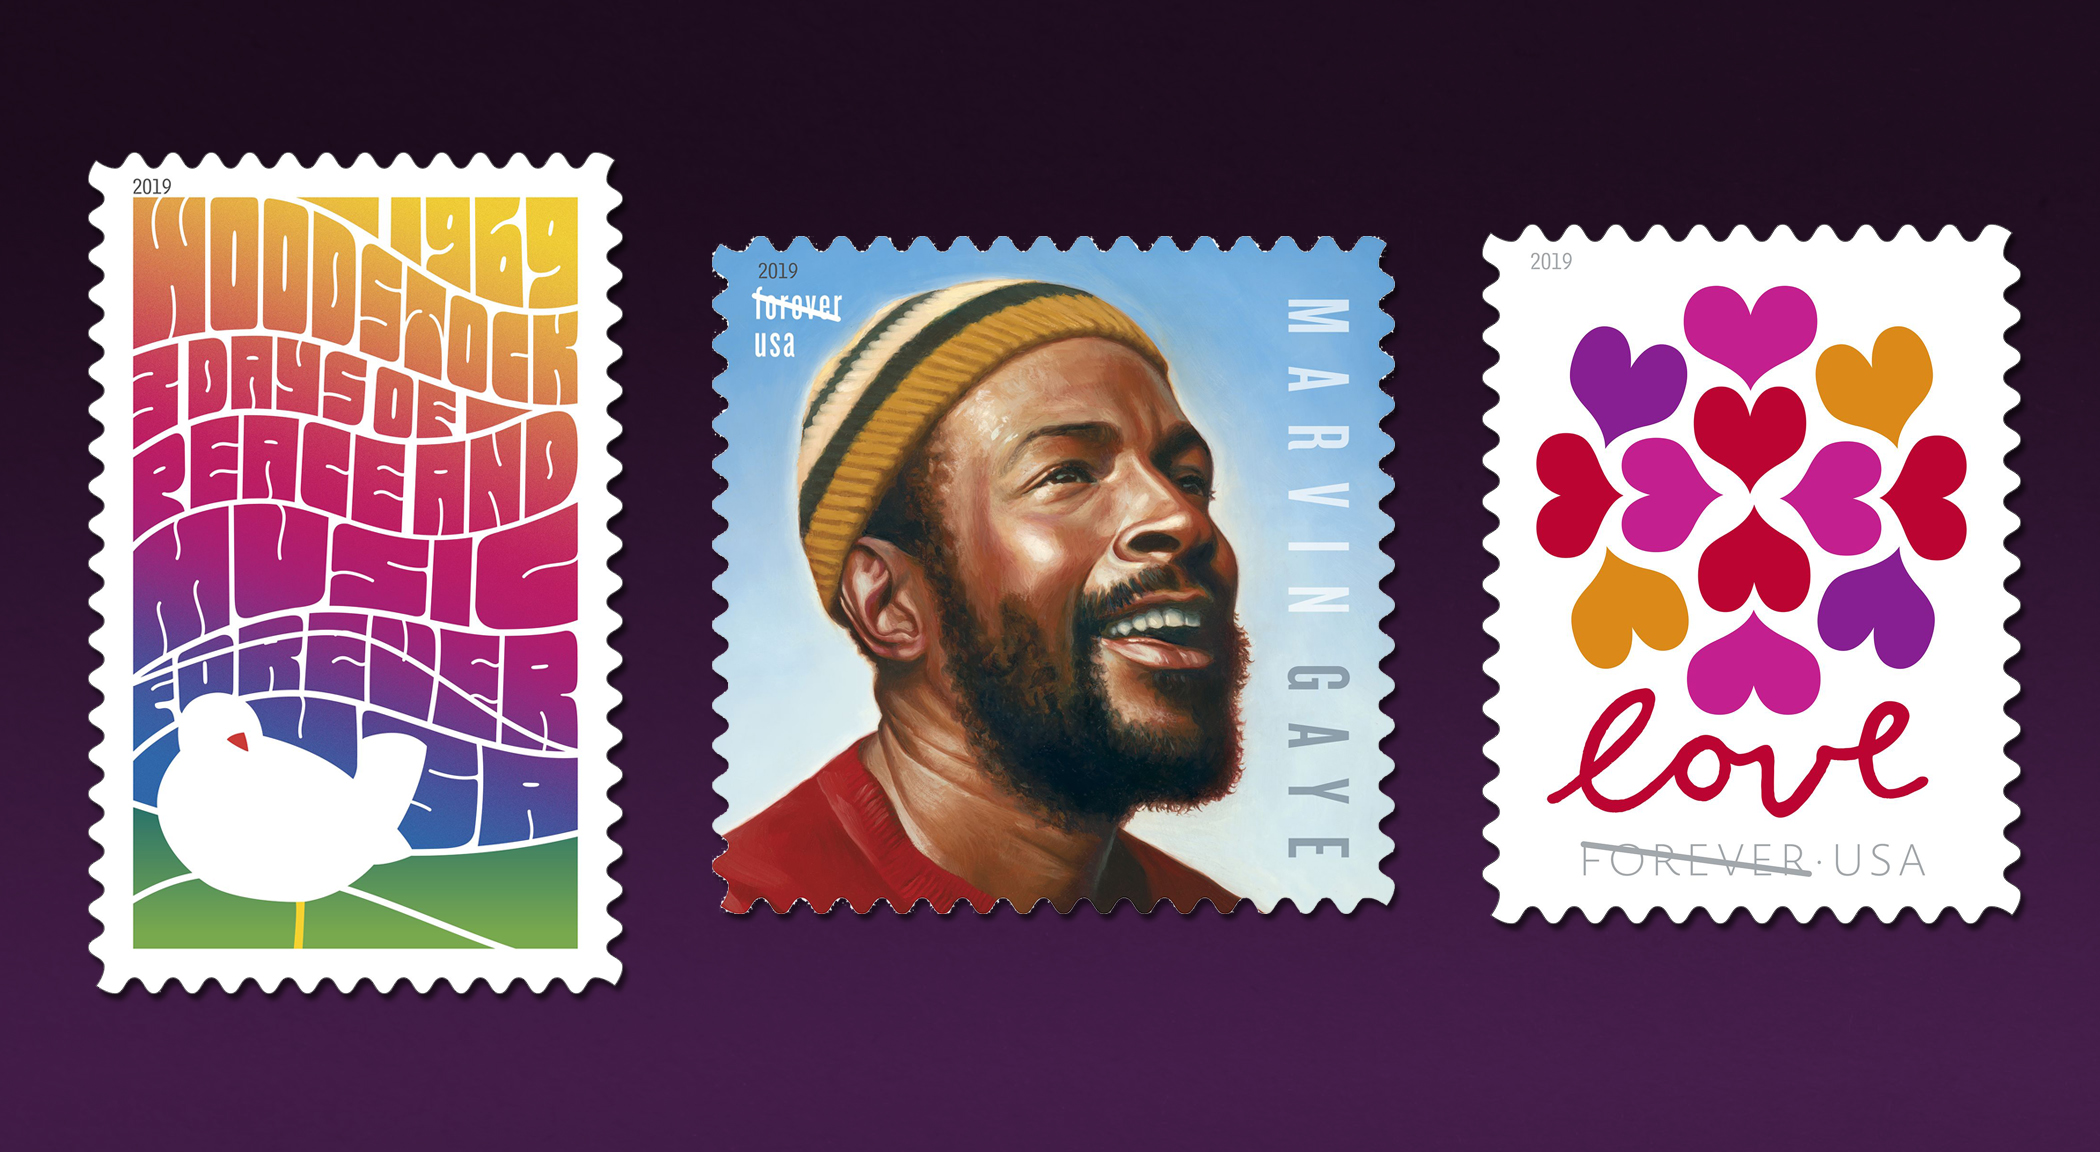 2019 US Stamp Program Announced Including Marvin Gaye, Woodstock